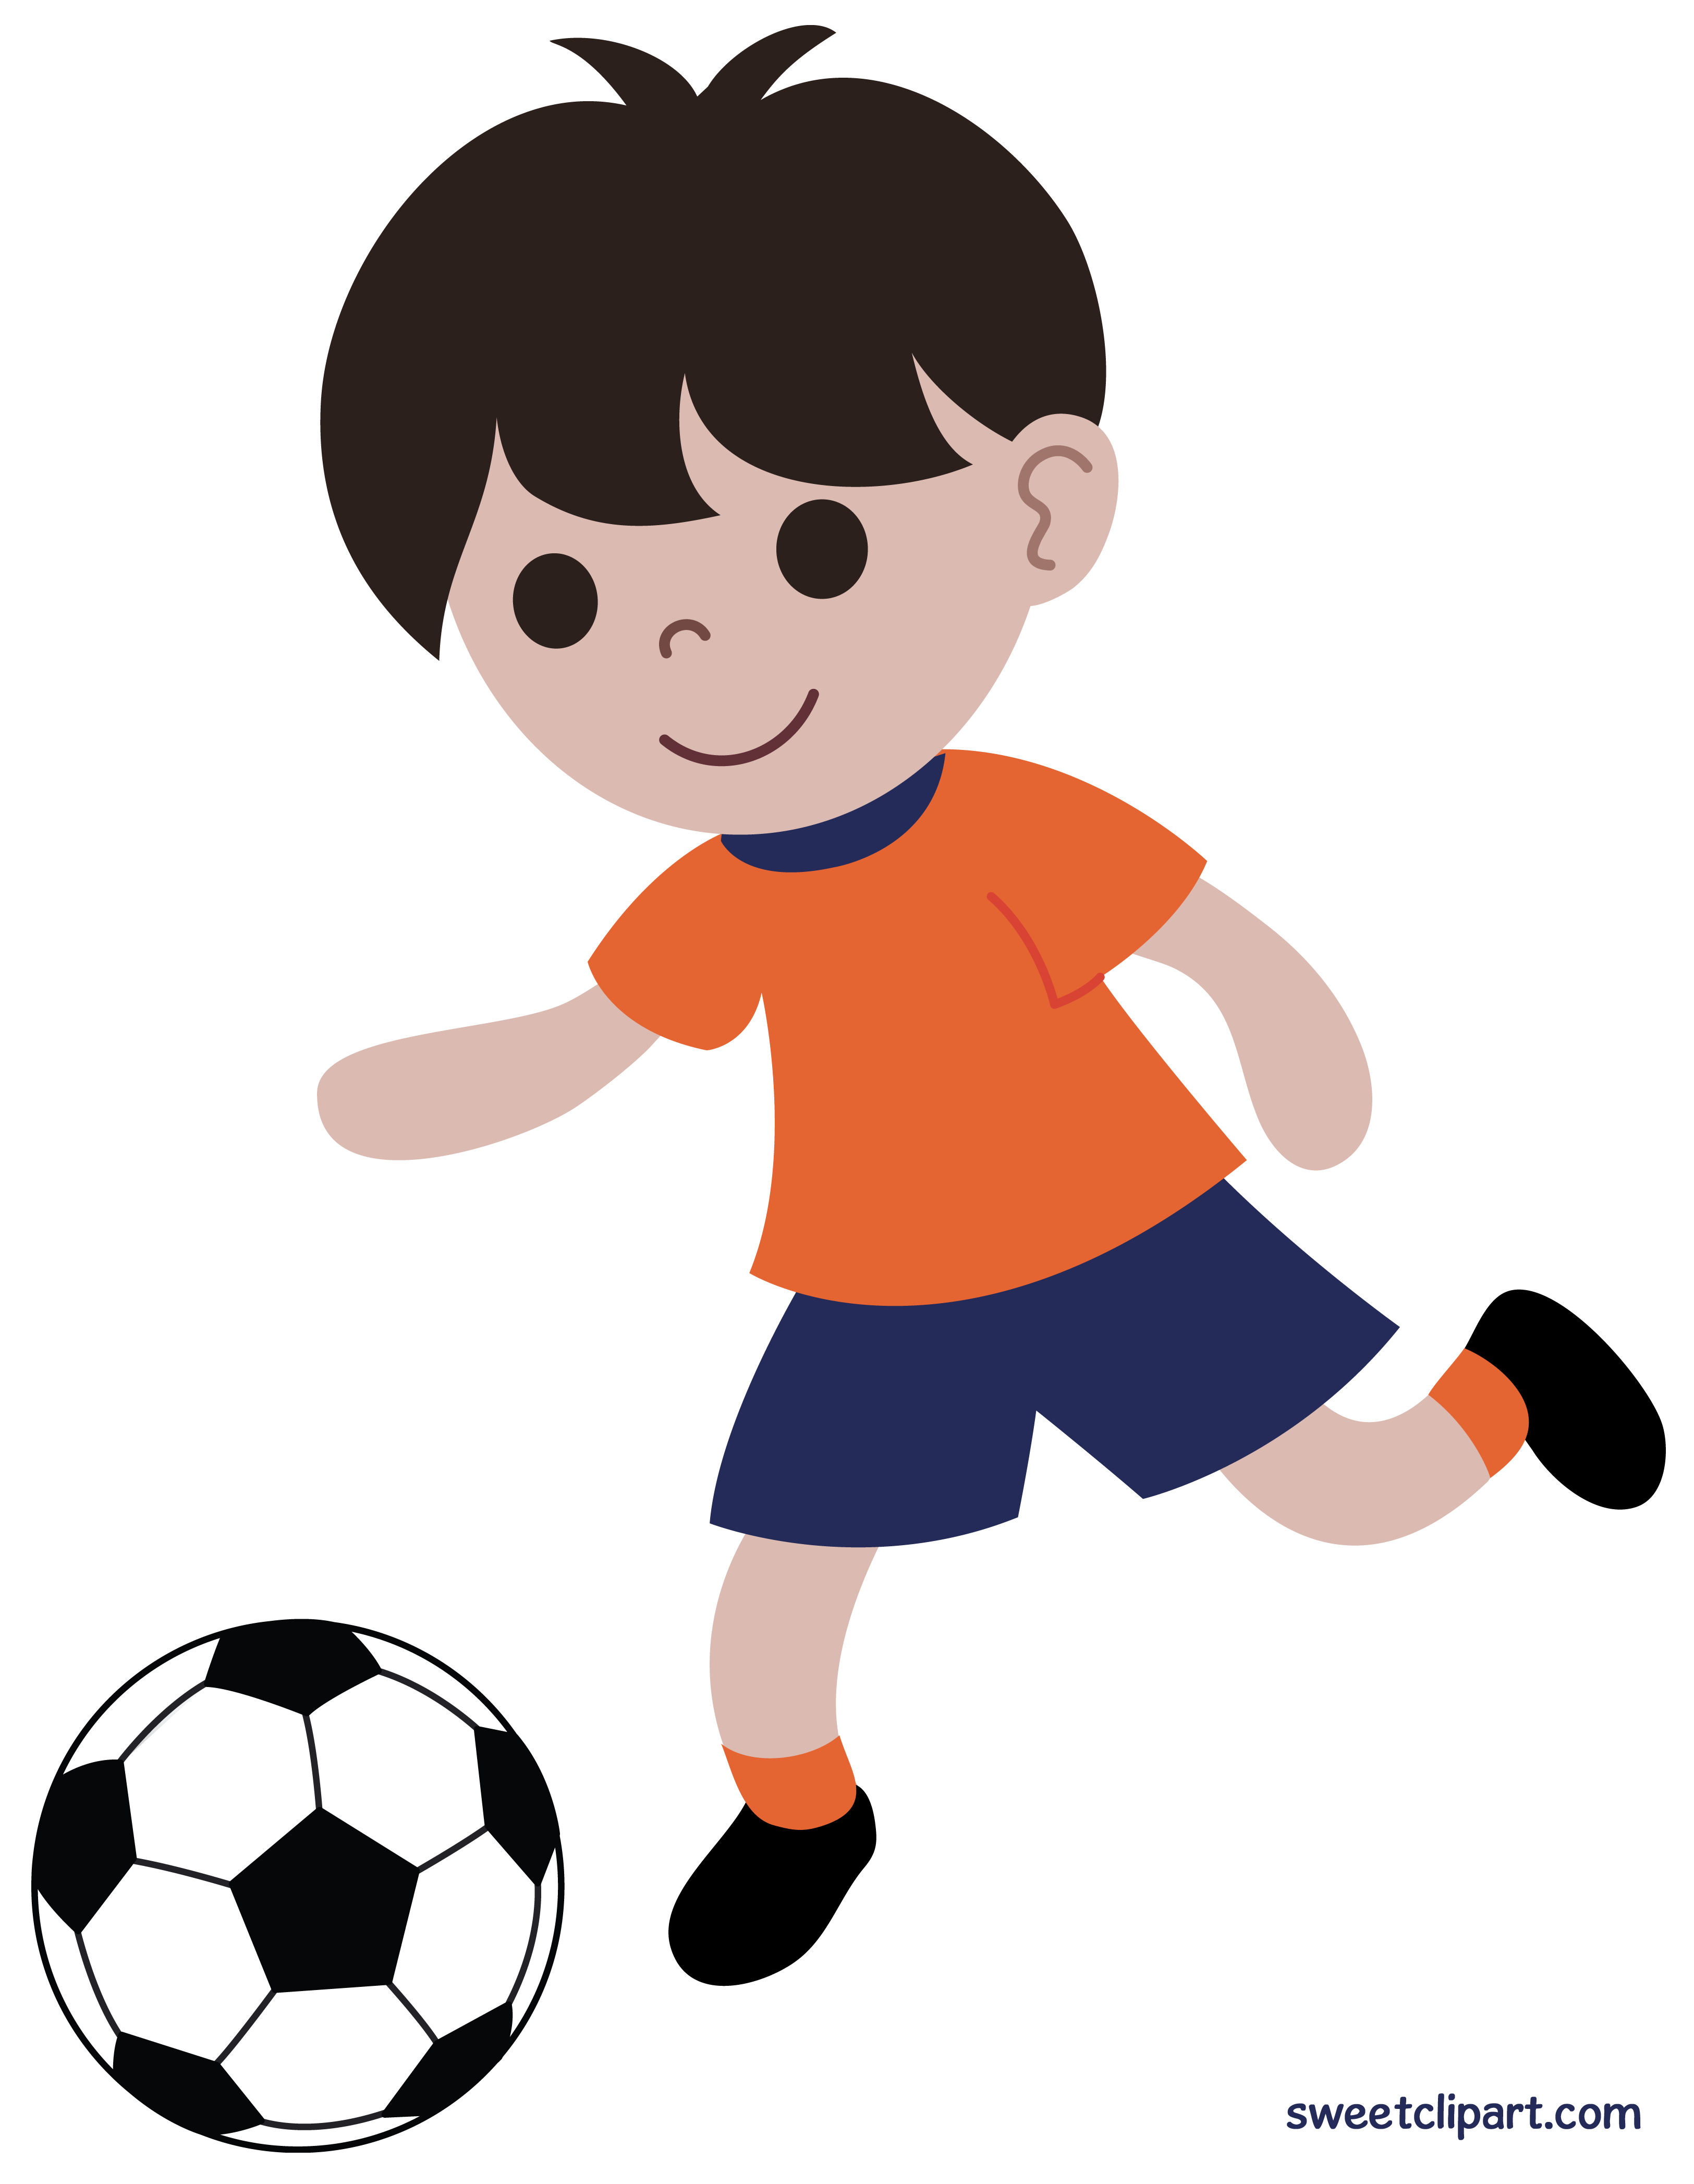 Soccer clipart. Girl playing at getdrawings image royalty free download